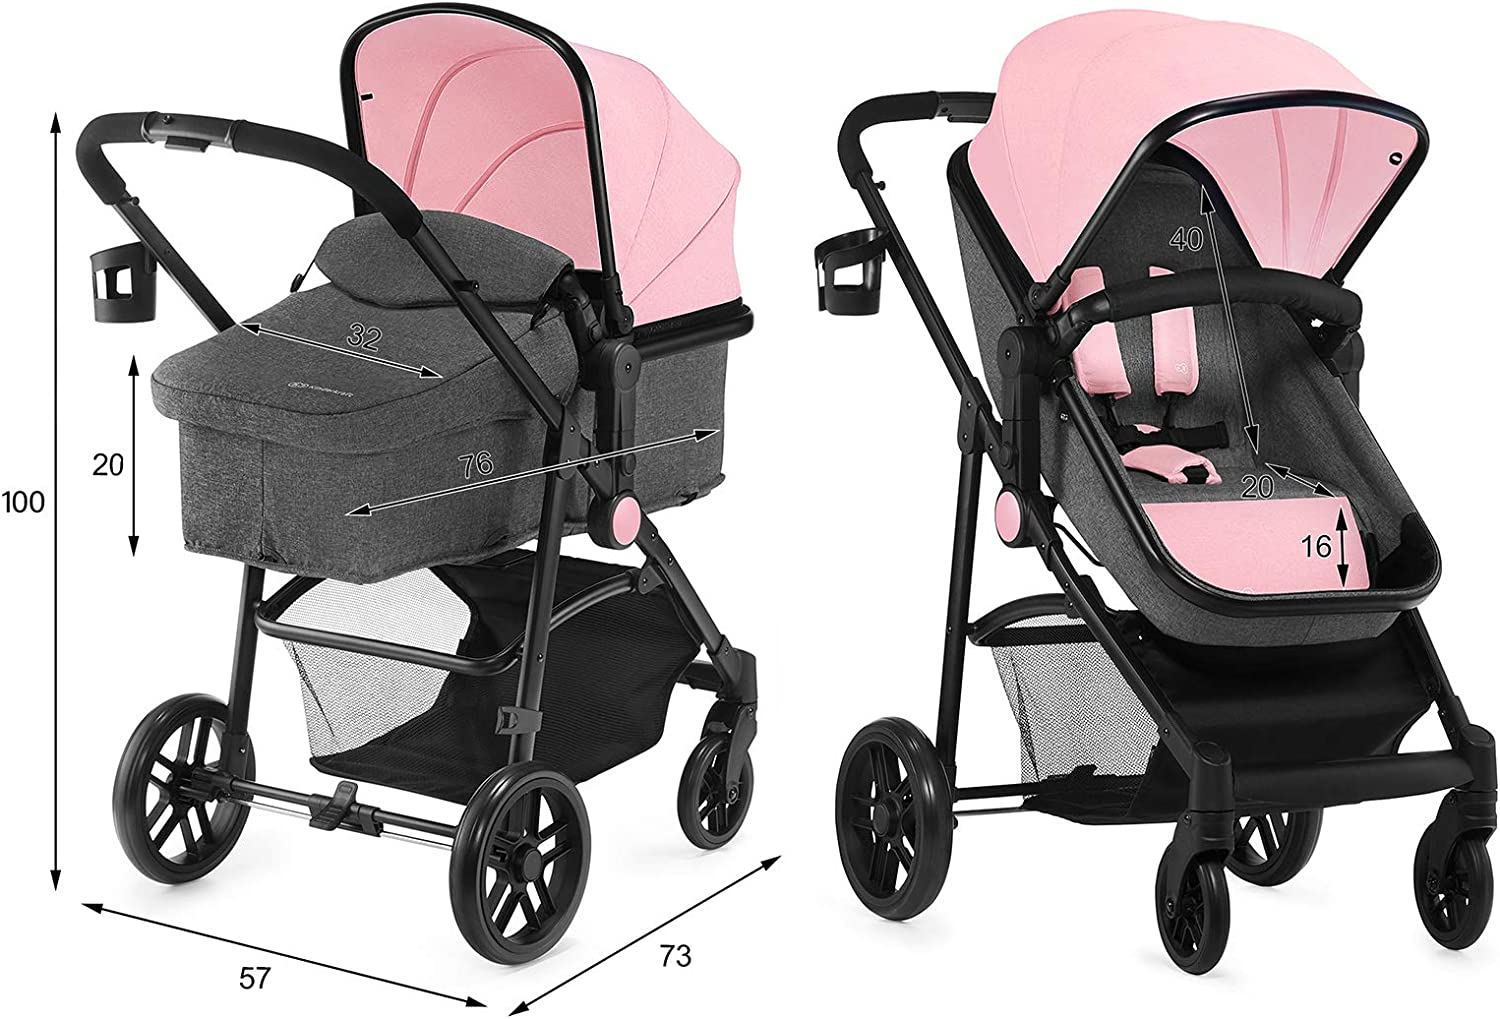 0-13 Kg Kinderkraft Pram 2 in 1 Set Juli with Carrycot Accessories Pink Rear or Front Facing Footmuff Travel System Foldable from Birth to 3 Years Buggy Baby Pushchair Rain Cover